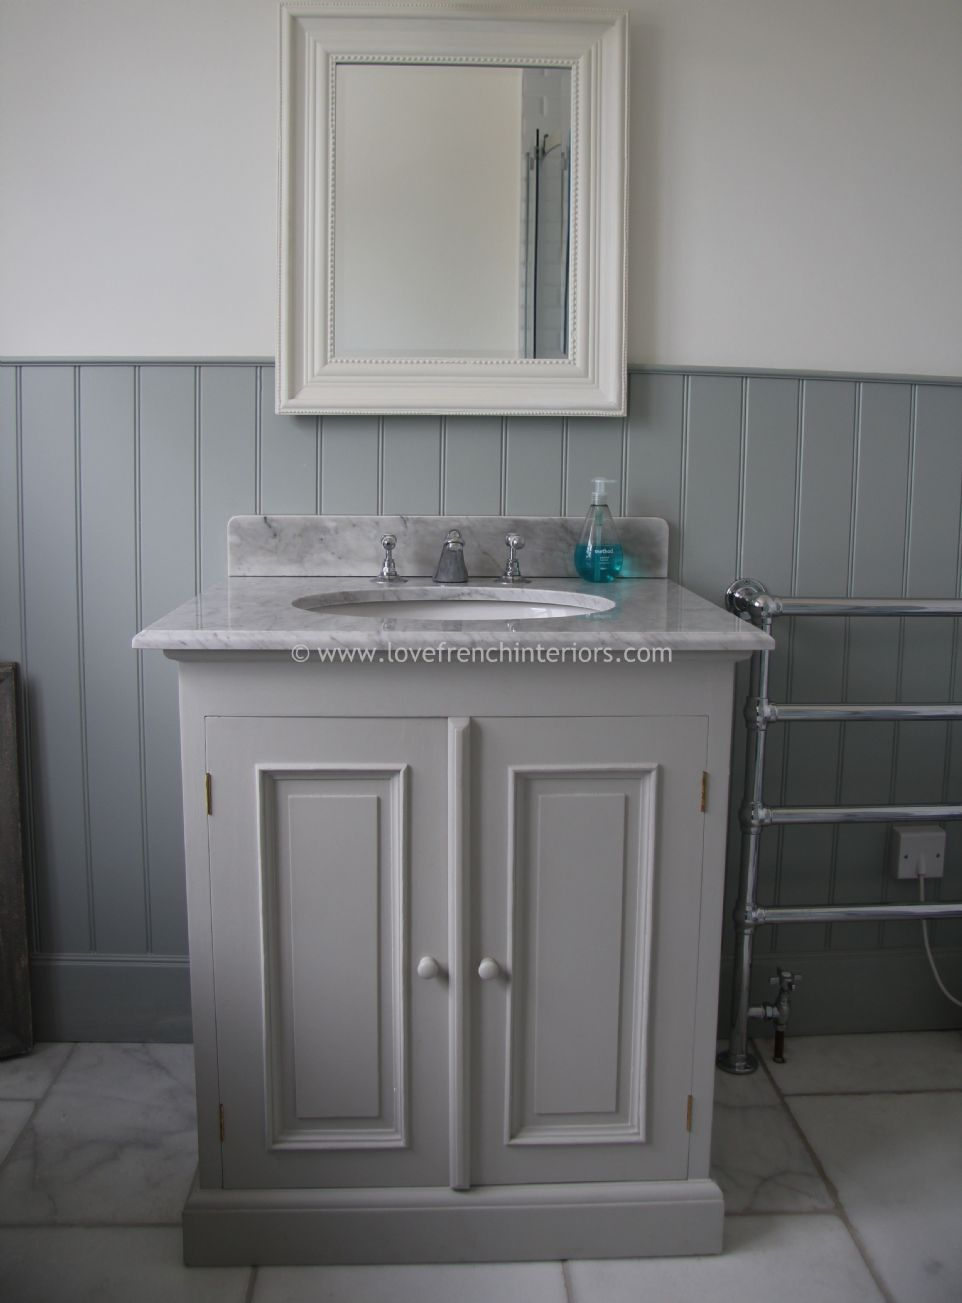 Bespoke Single Sink Vanity Unit With Two Doors